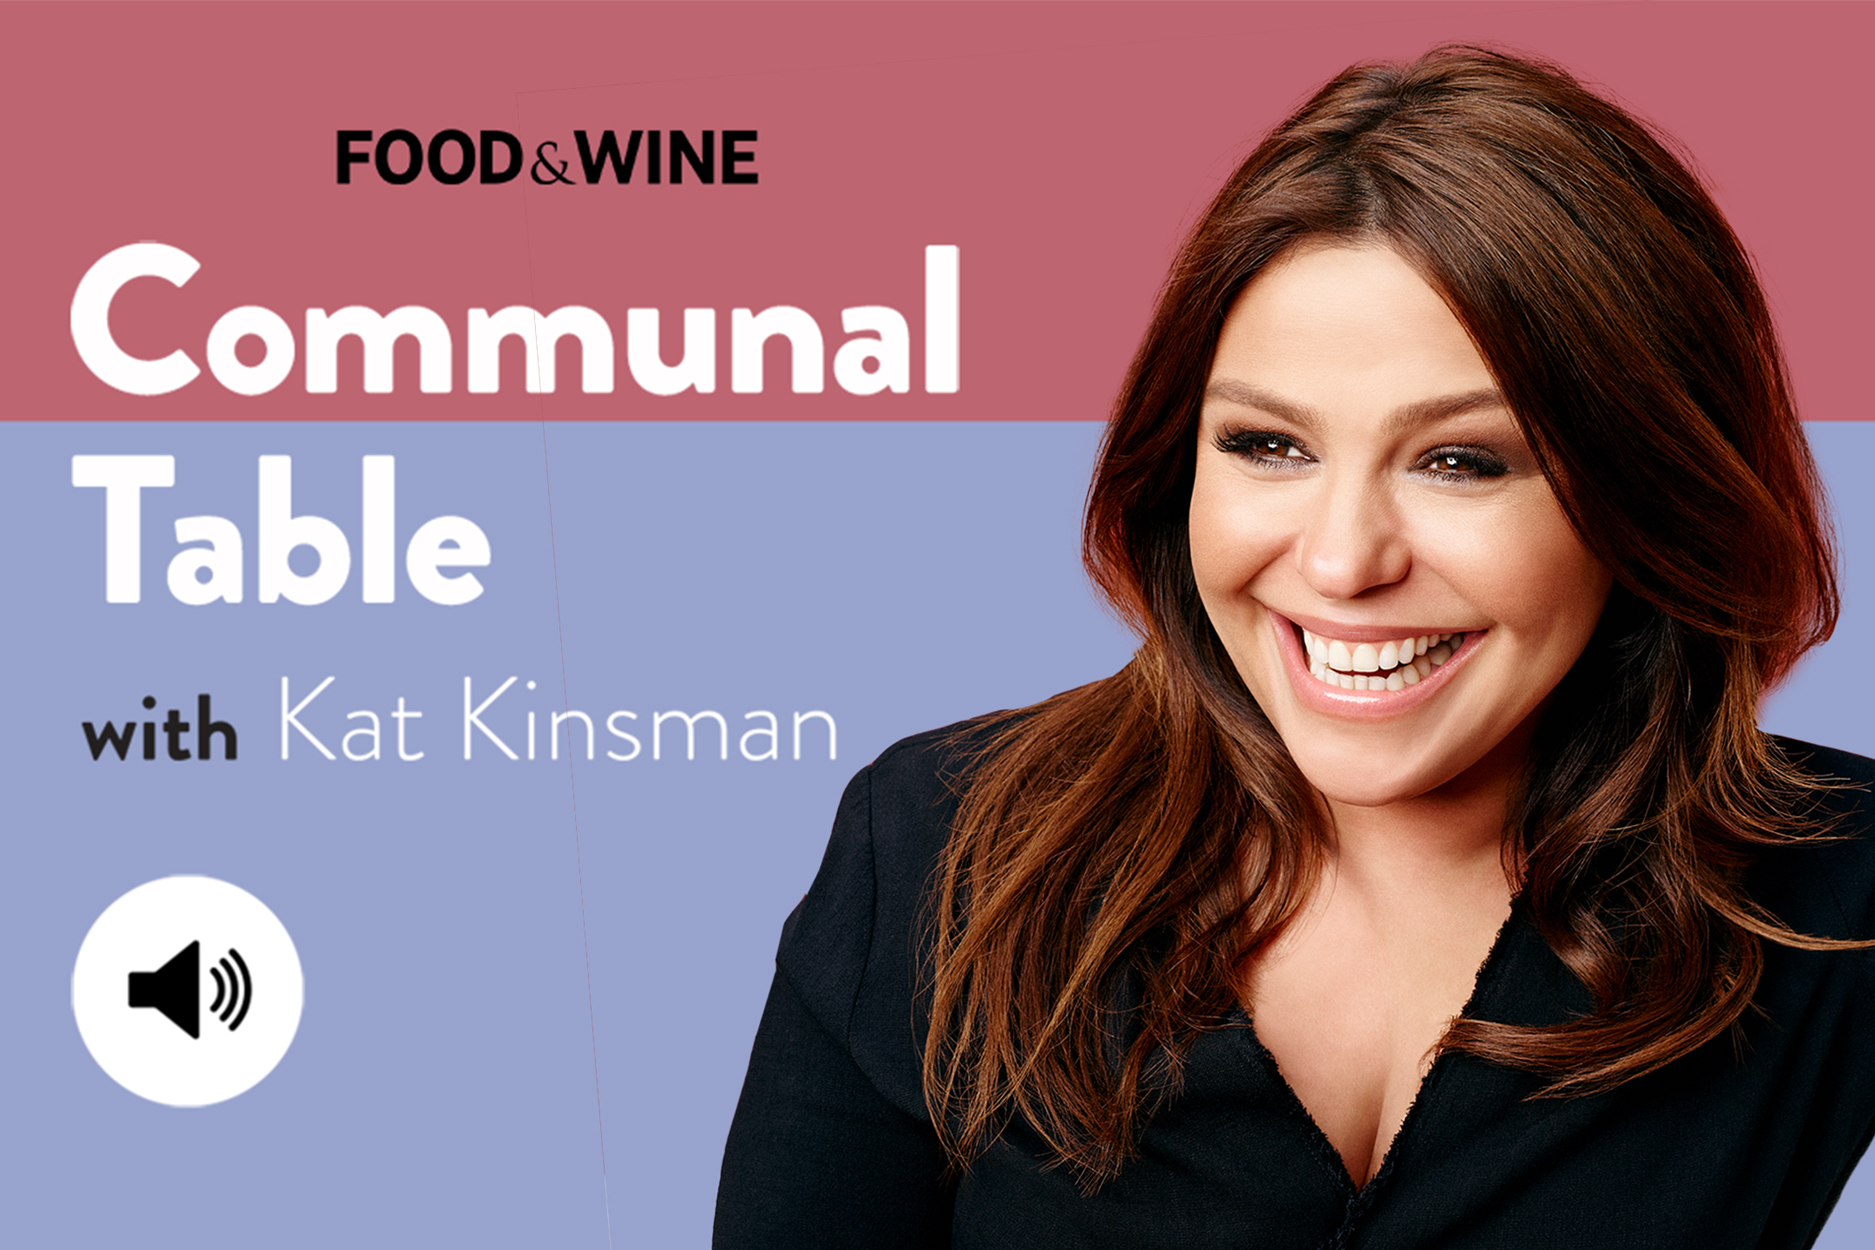 Communal Table with Kat Kinsman featuring Rachael Ray